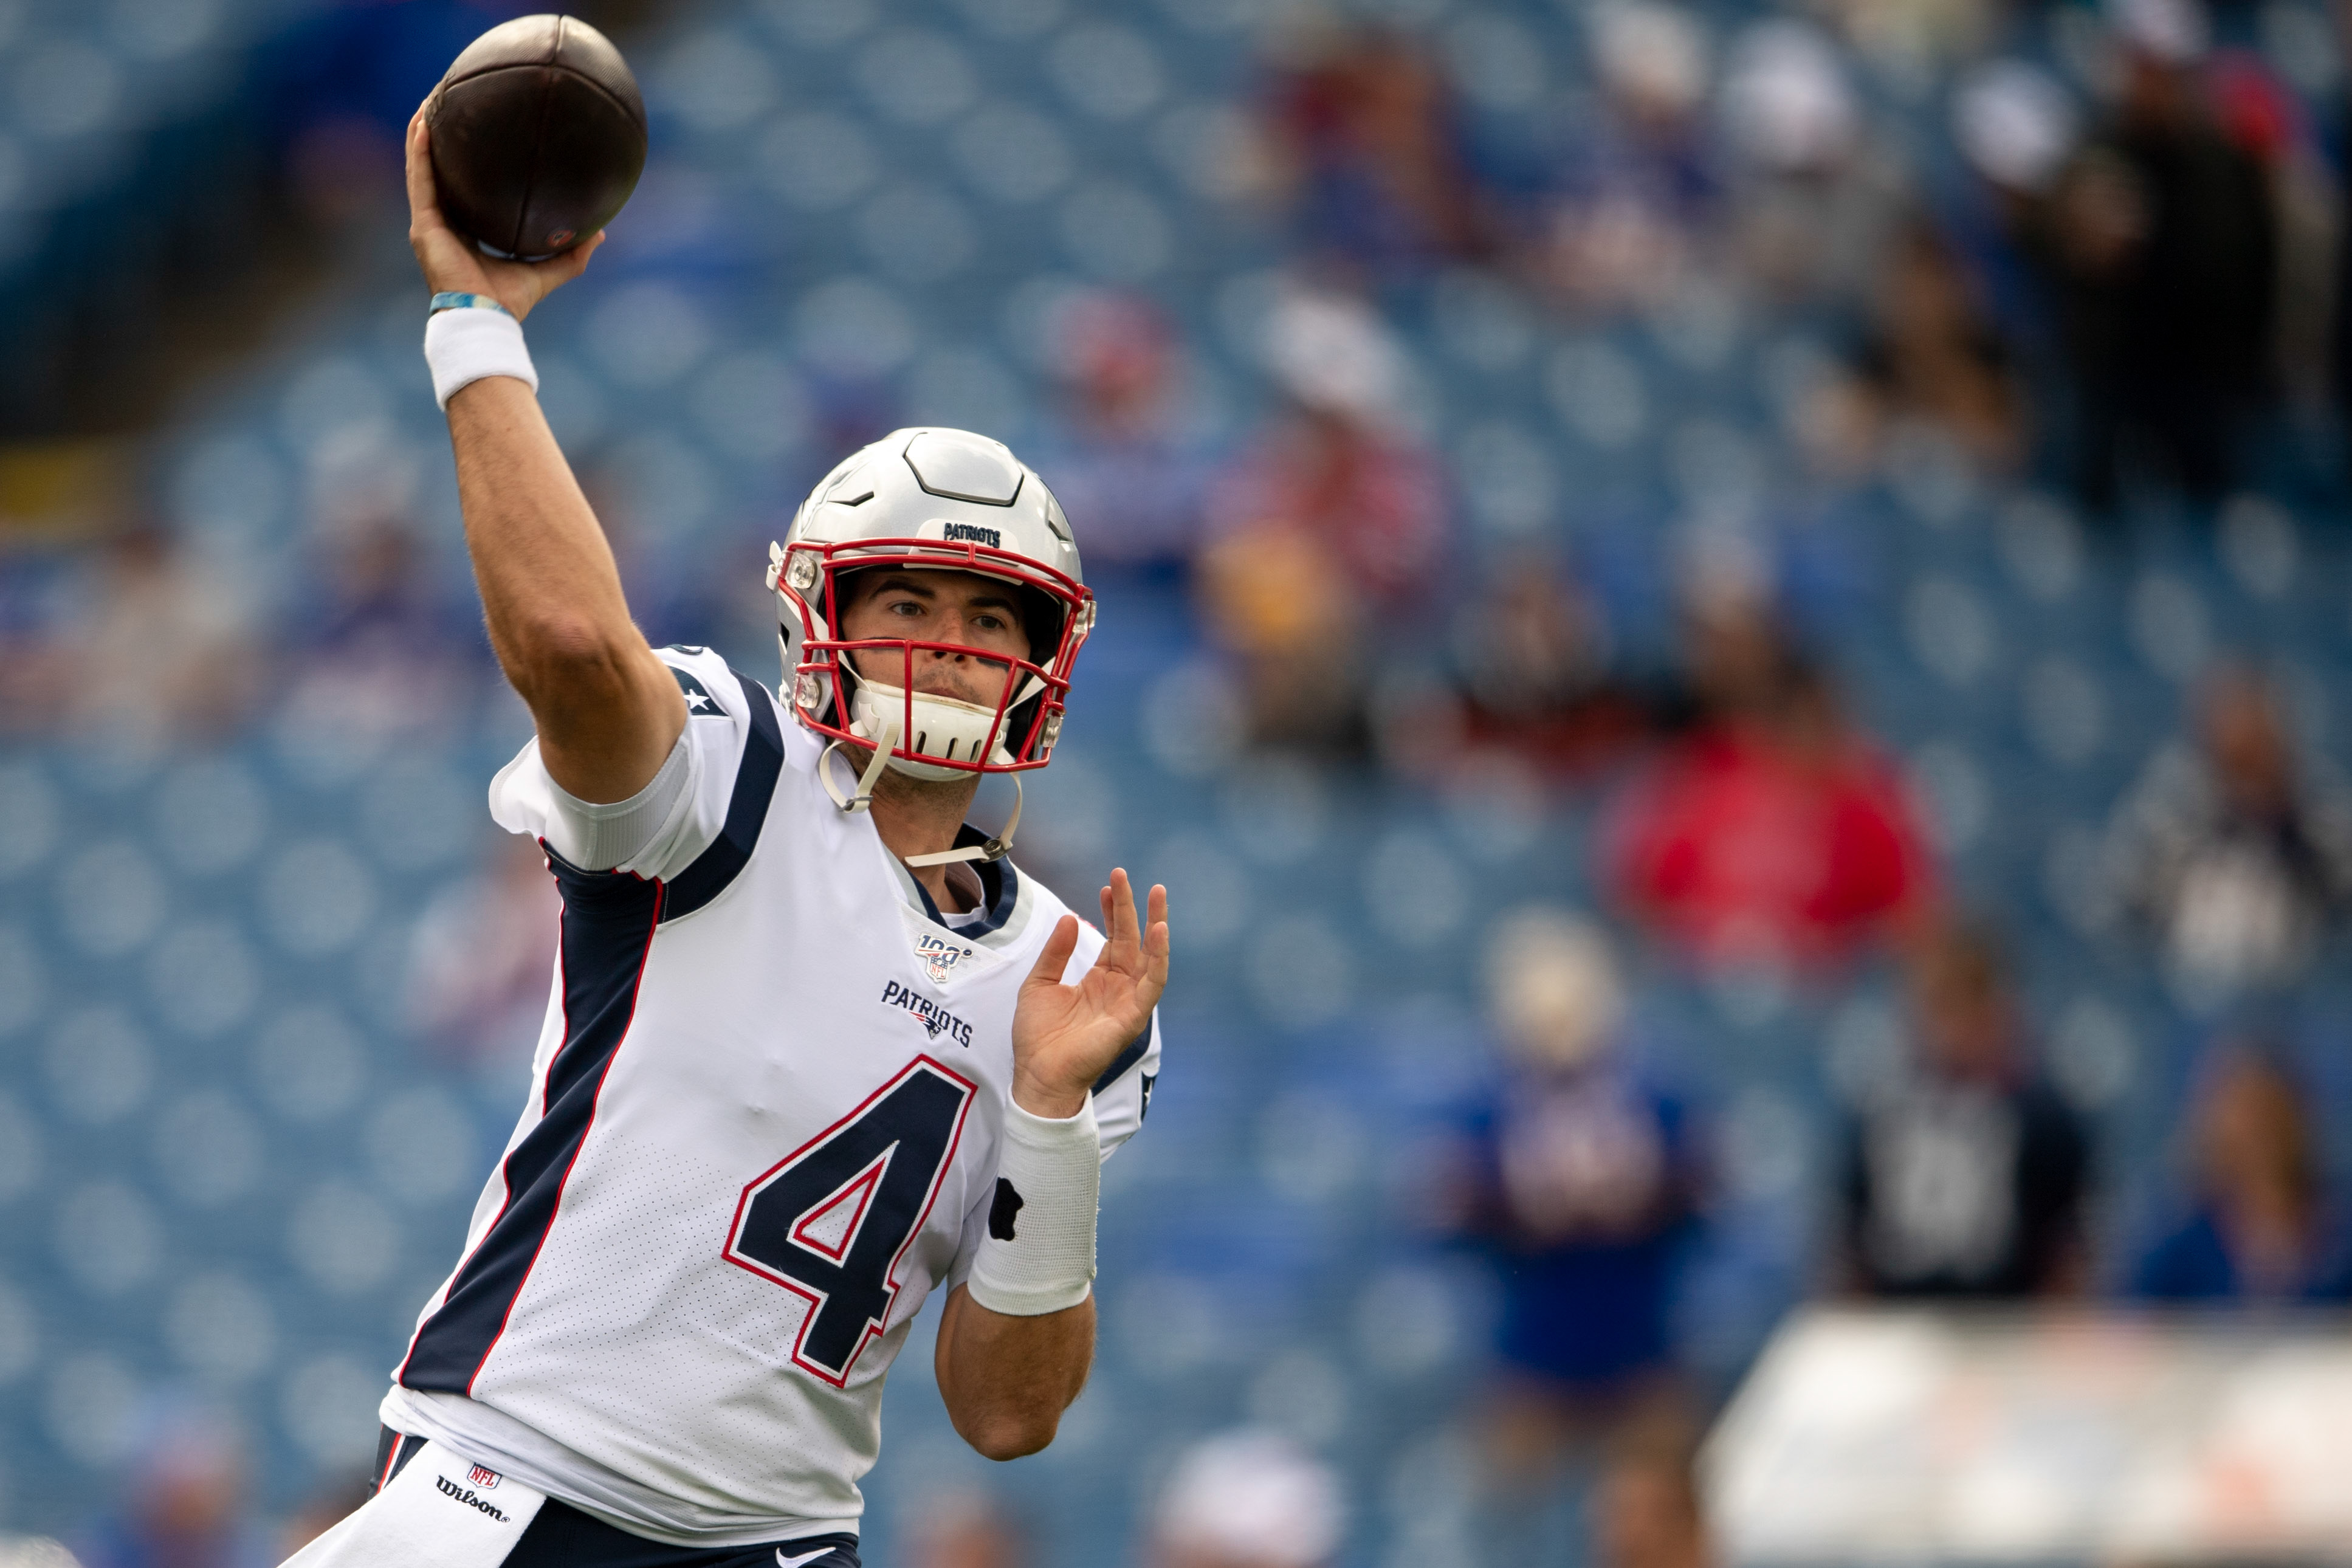 WATCH: AFC East Win Total Projections for 2020